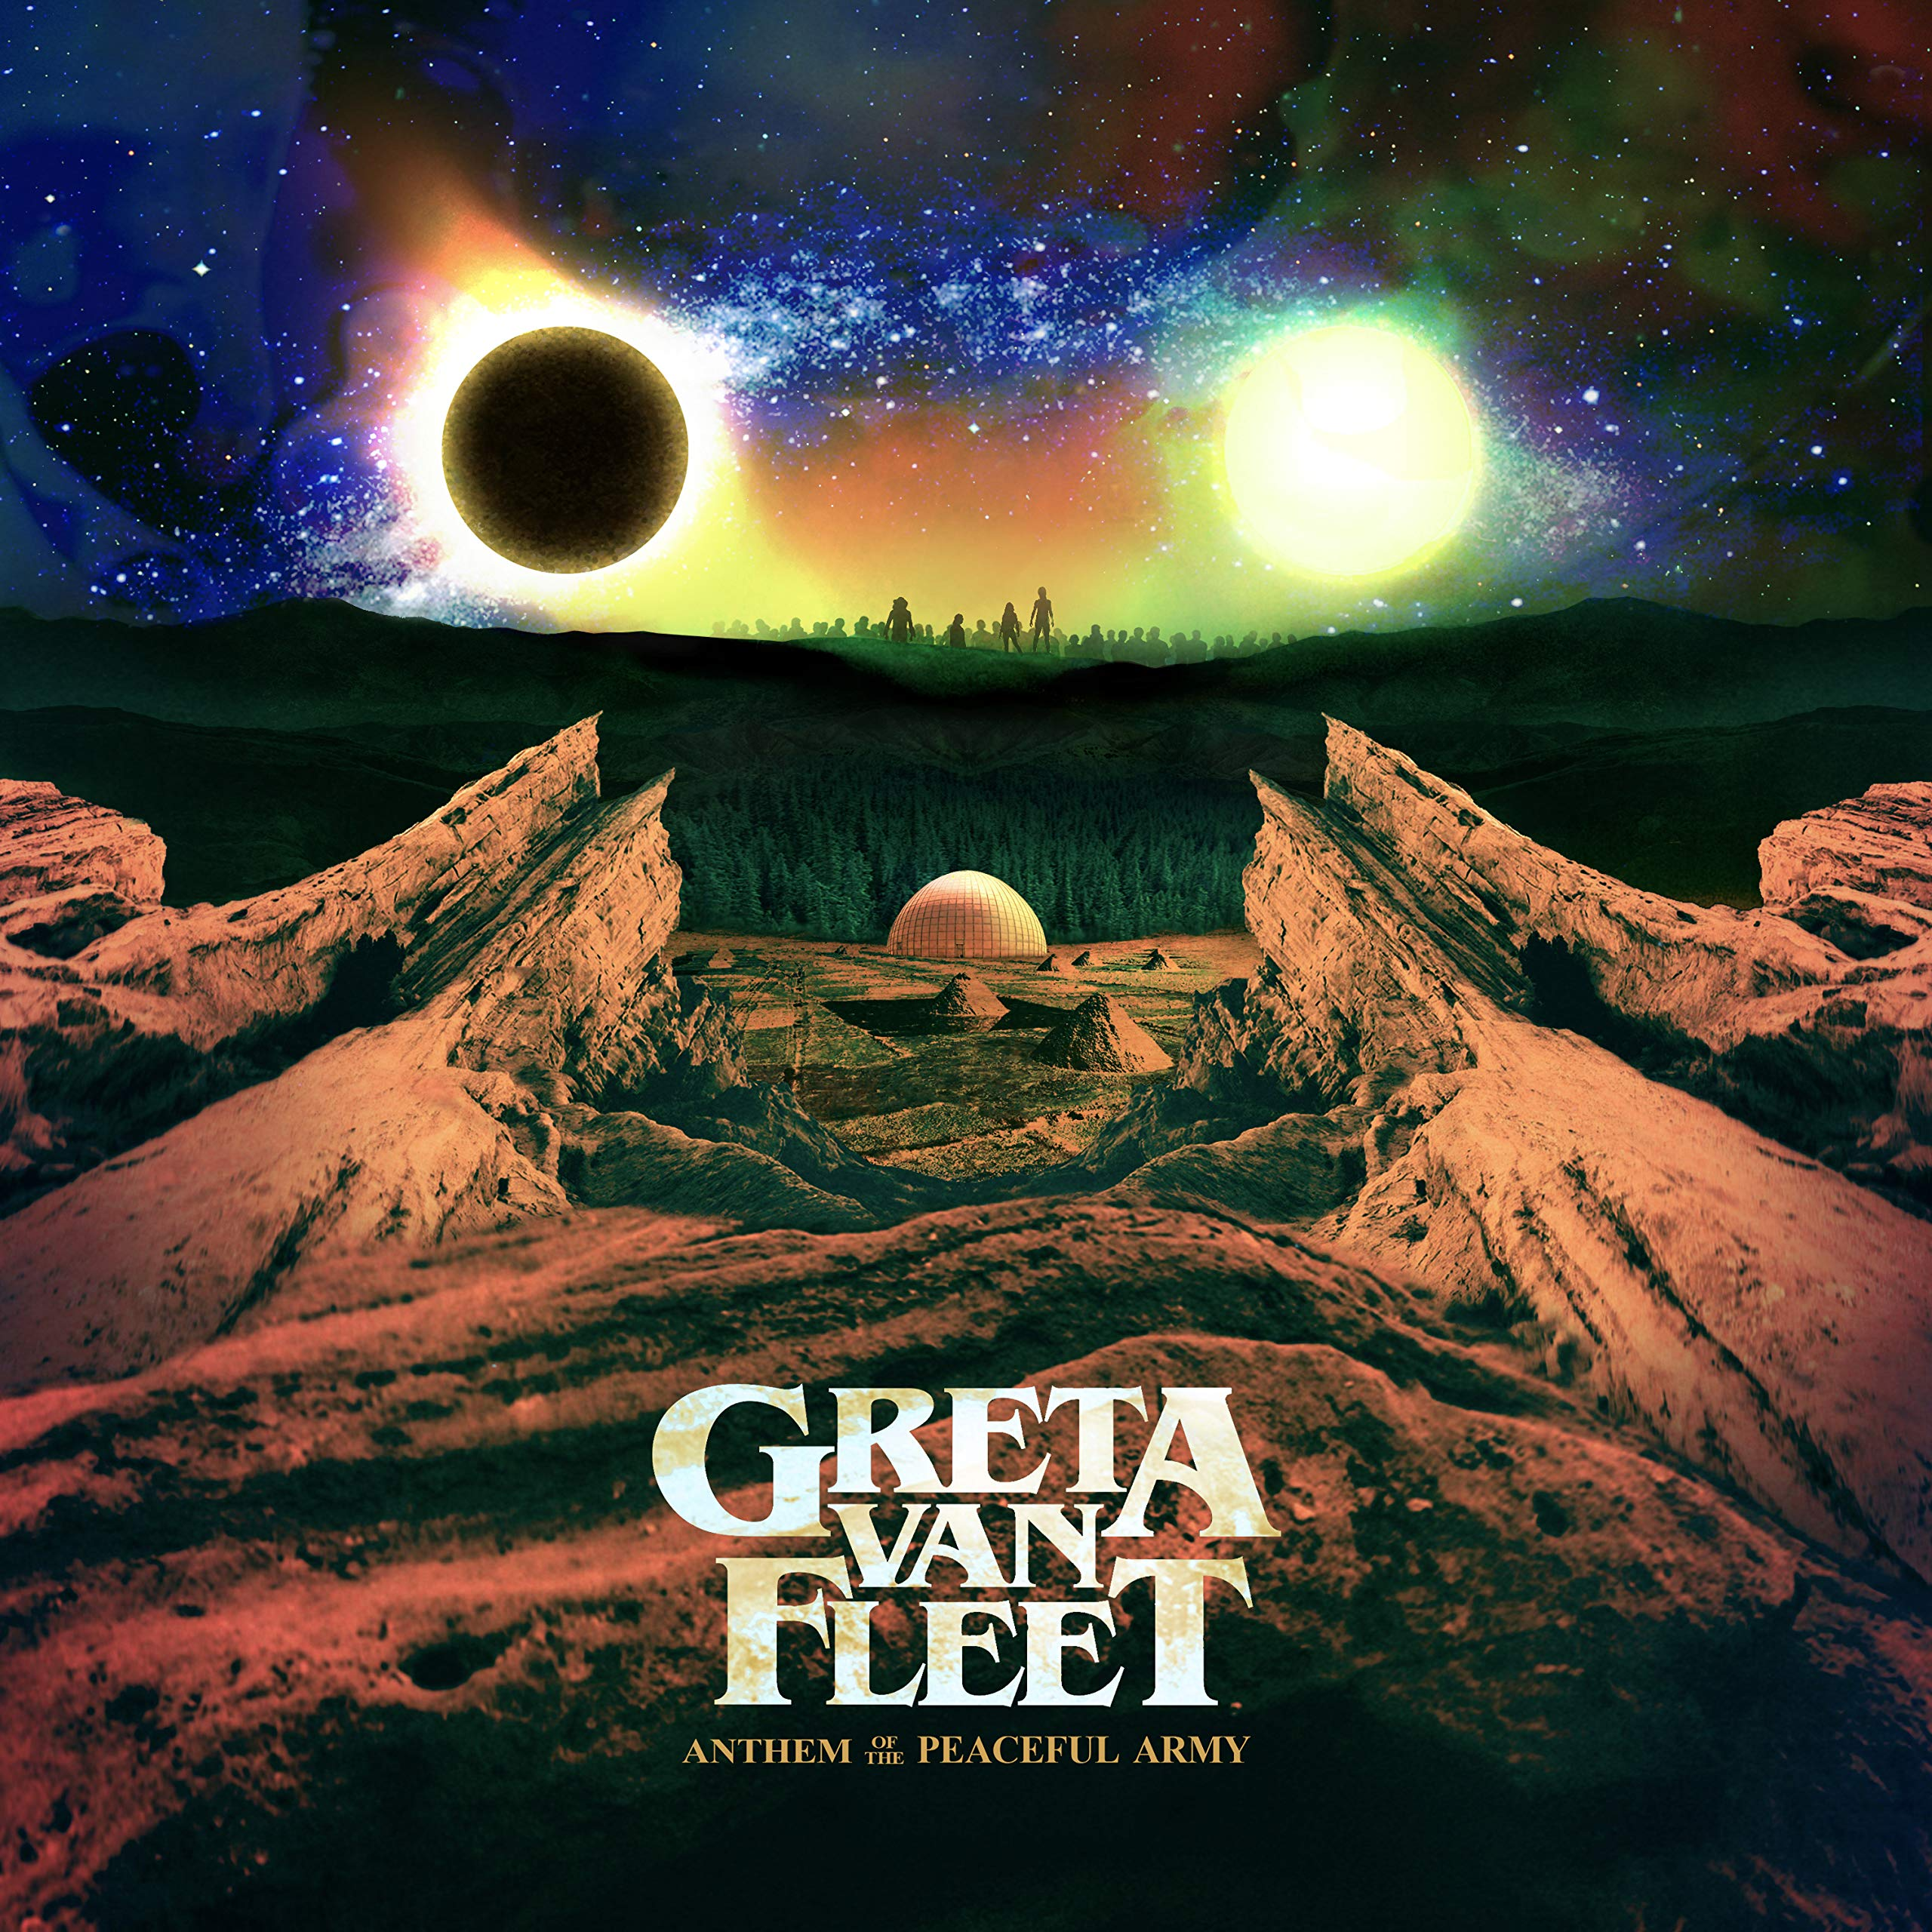 Vinilo : Greta Van Fleet - Anthem Of The Peaceful Army (LP Vinyl)